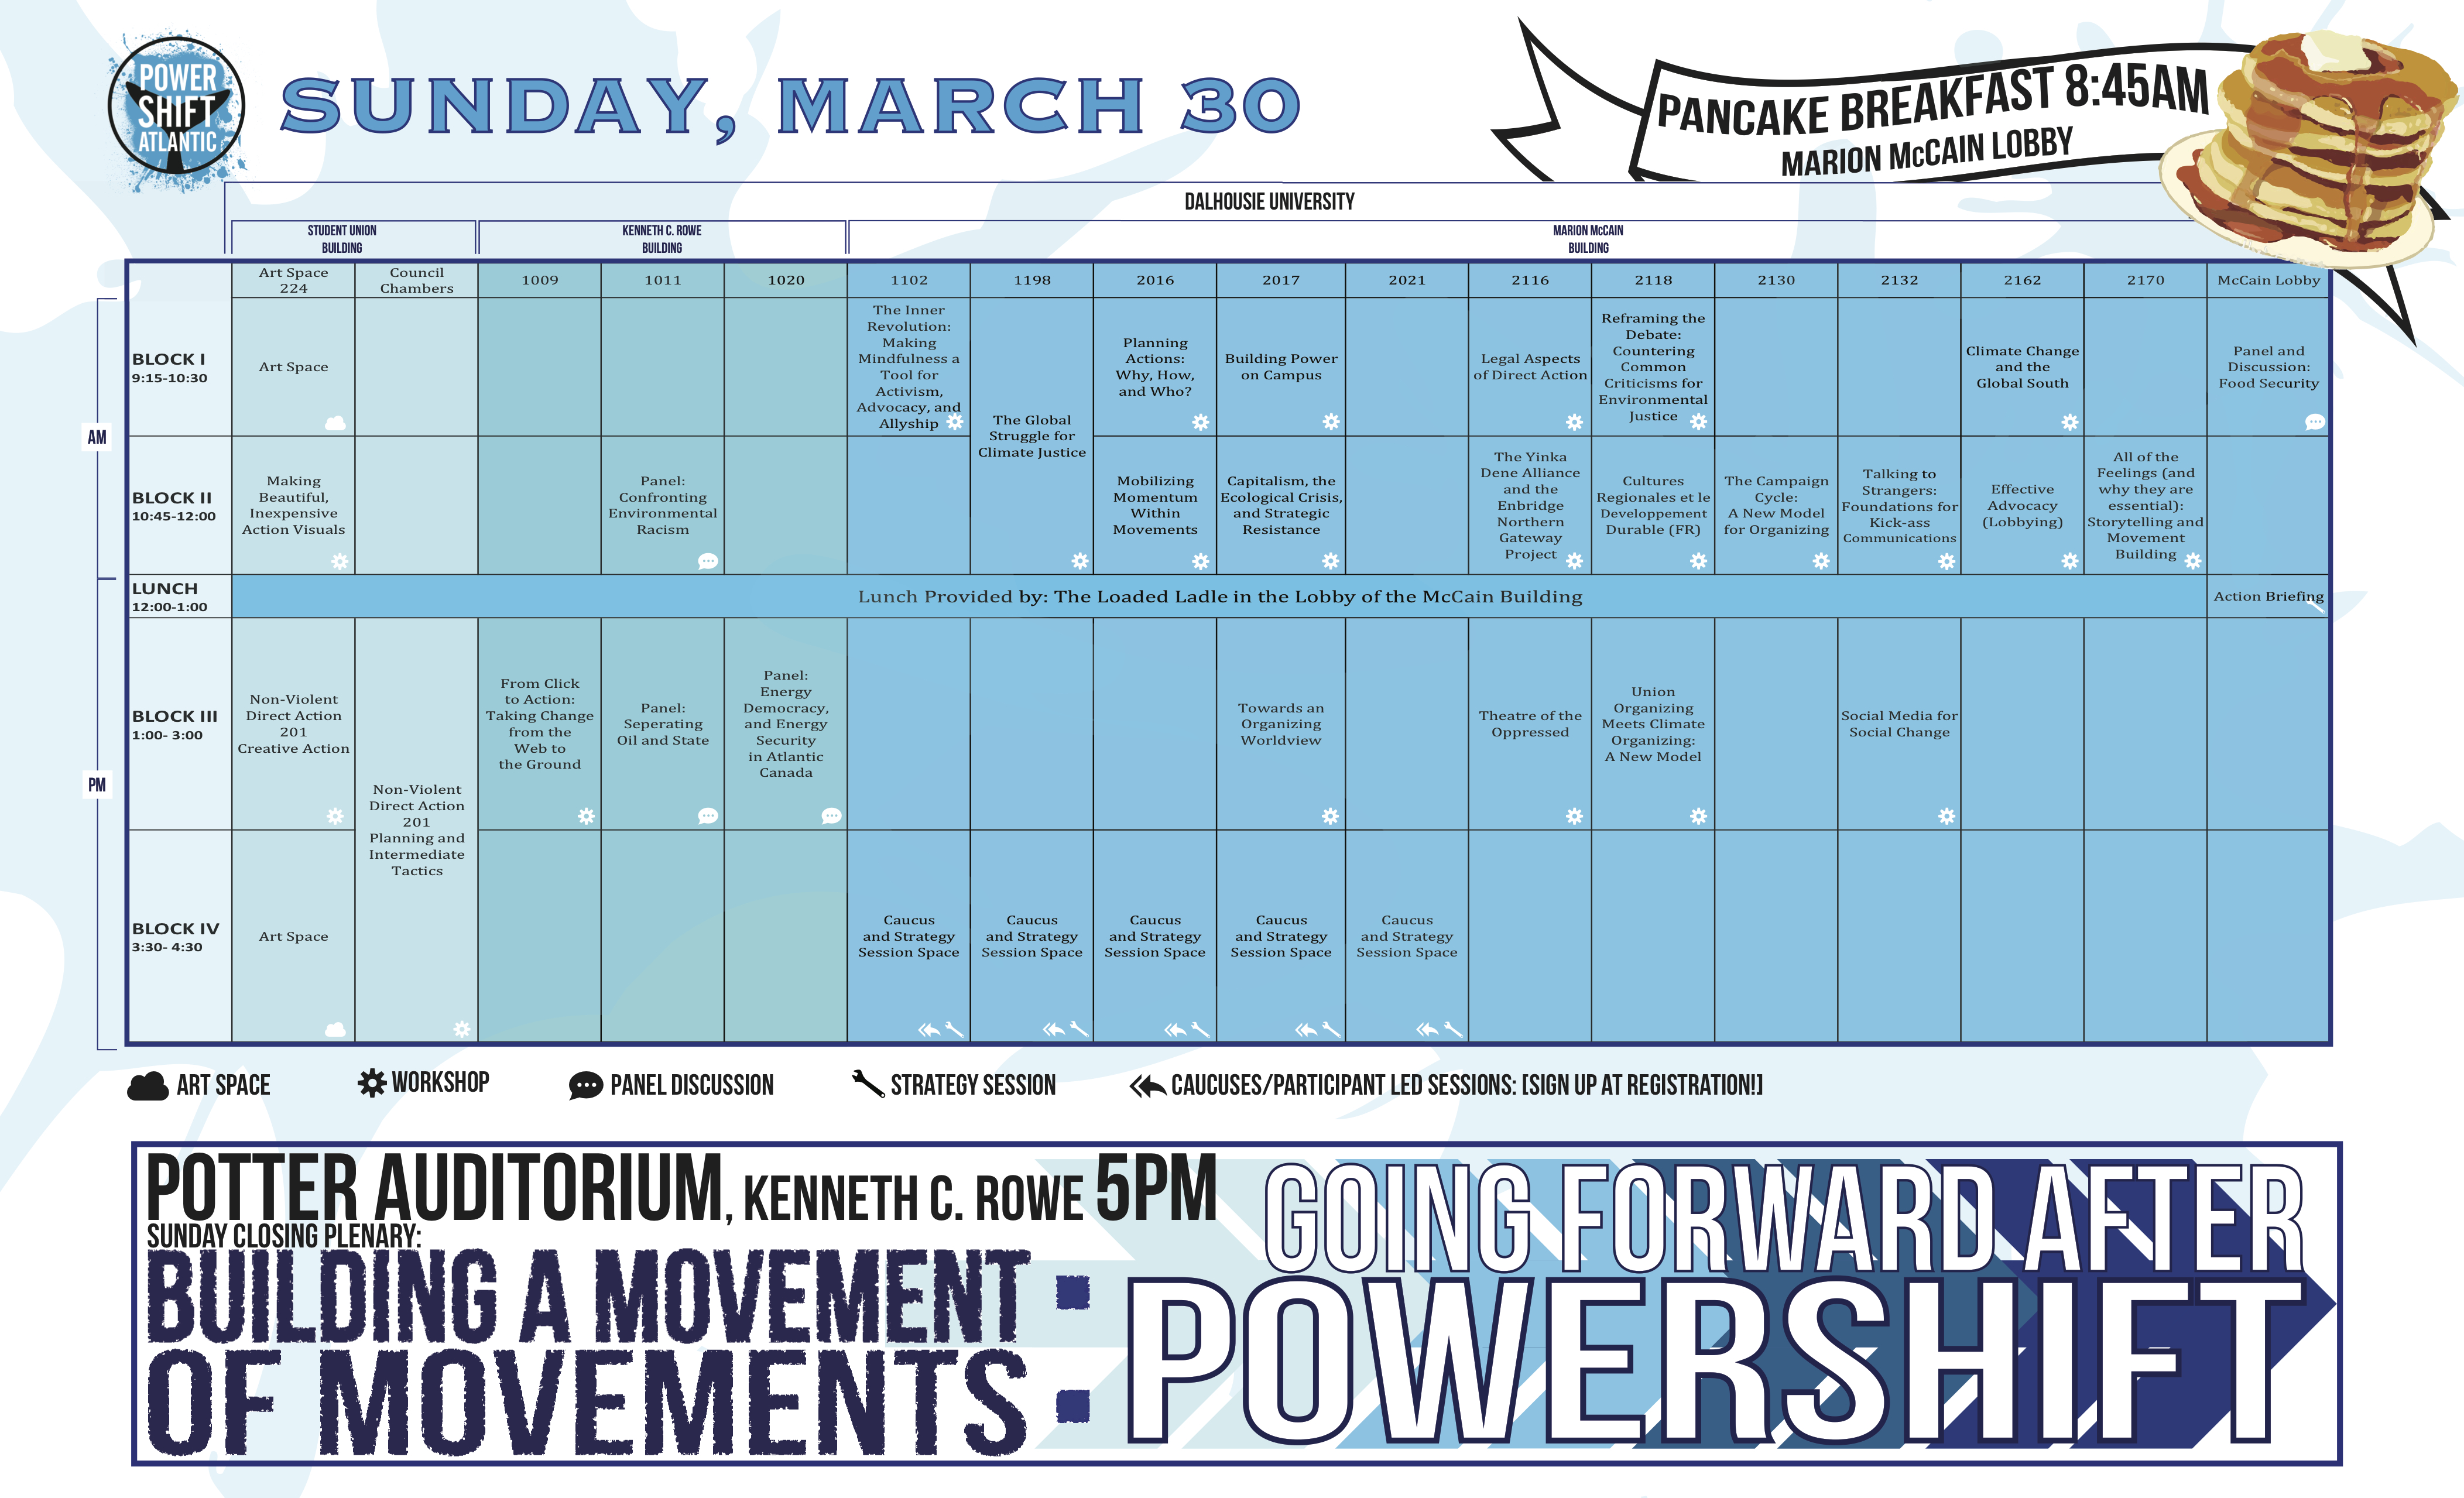 Sunday_Schedule_Matrix__Powershift_Atlantic_2014_(1).jpg